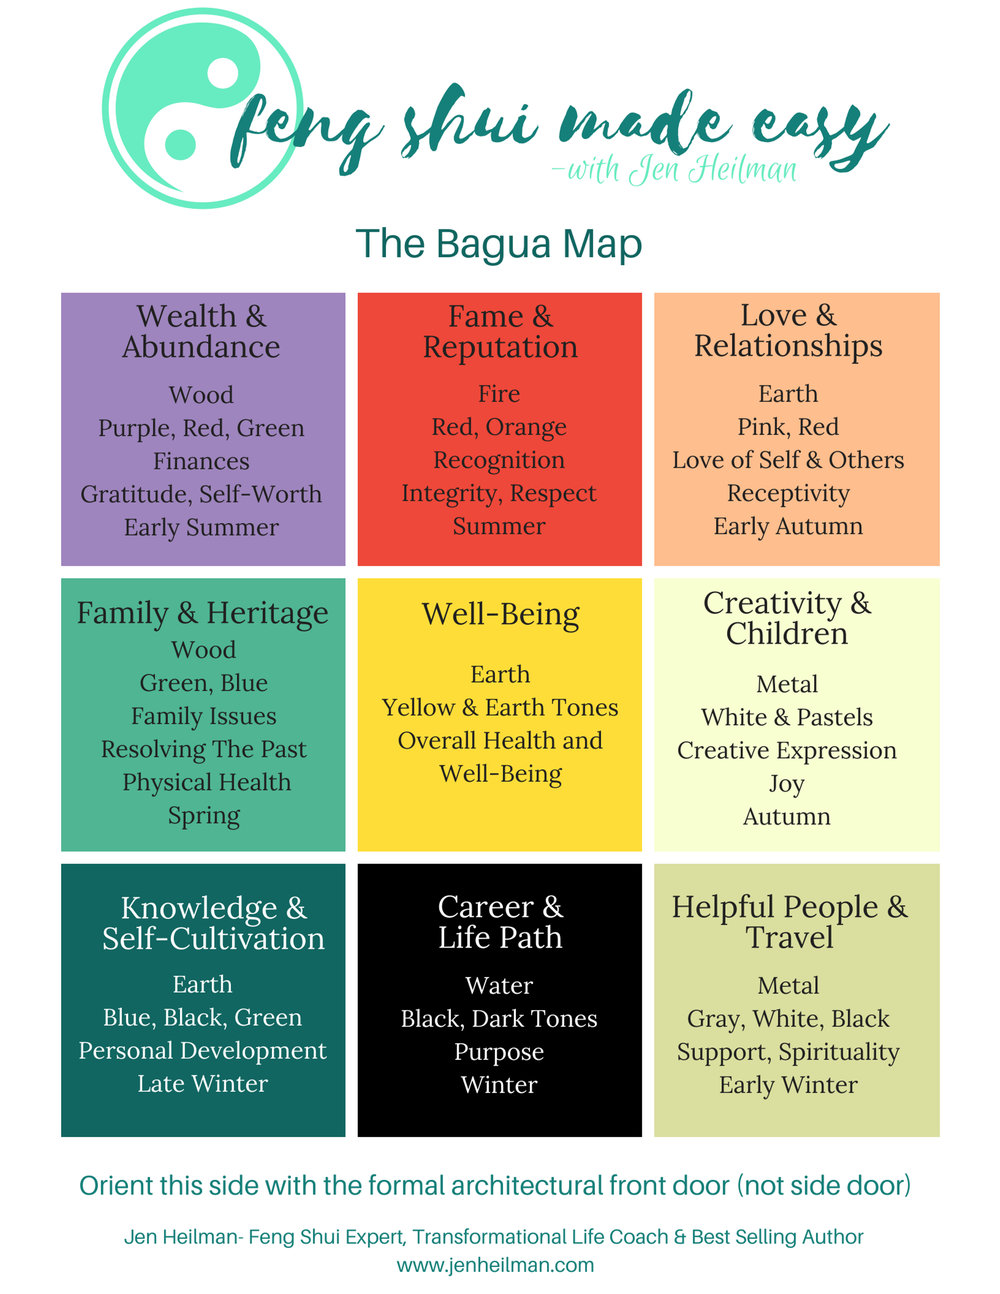 Bagua Map Image Feng Shui Made Easy with Jenheilman.jpg